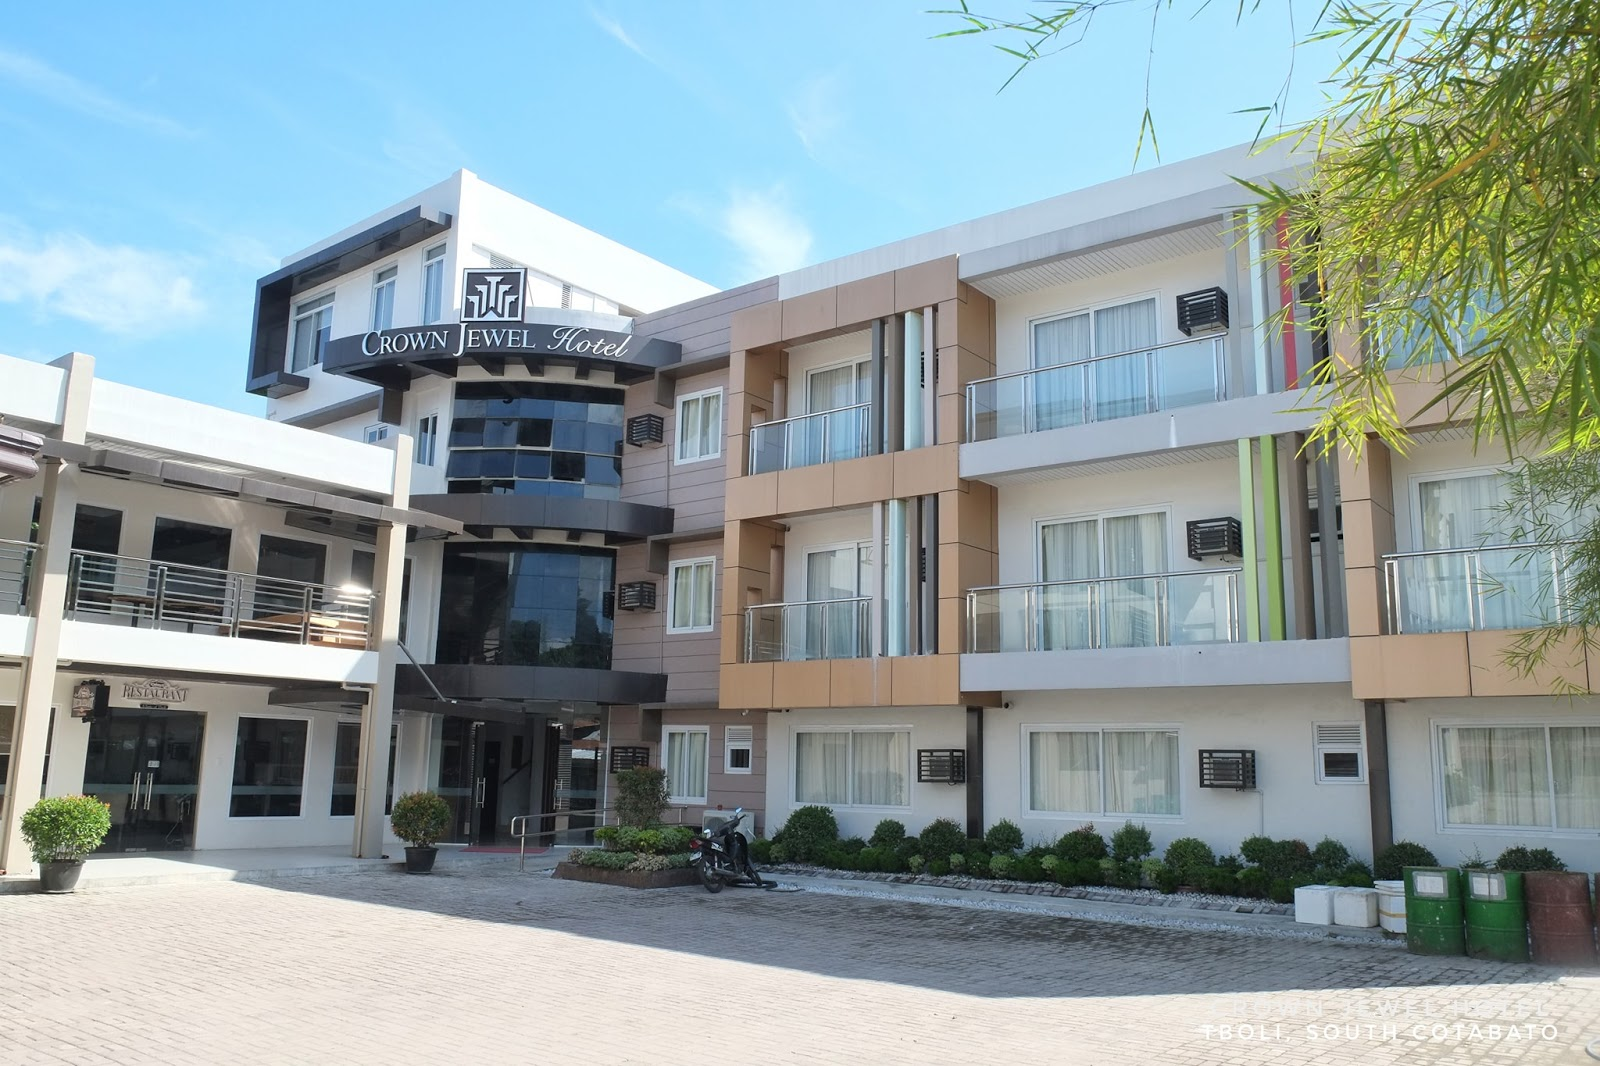 Crown Jewel Hotel in Tboli, South Cotabato